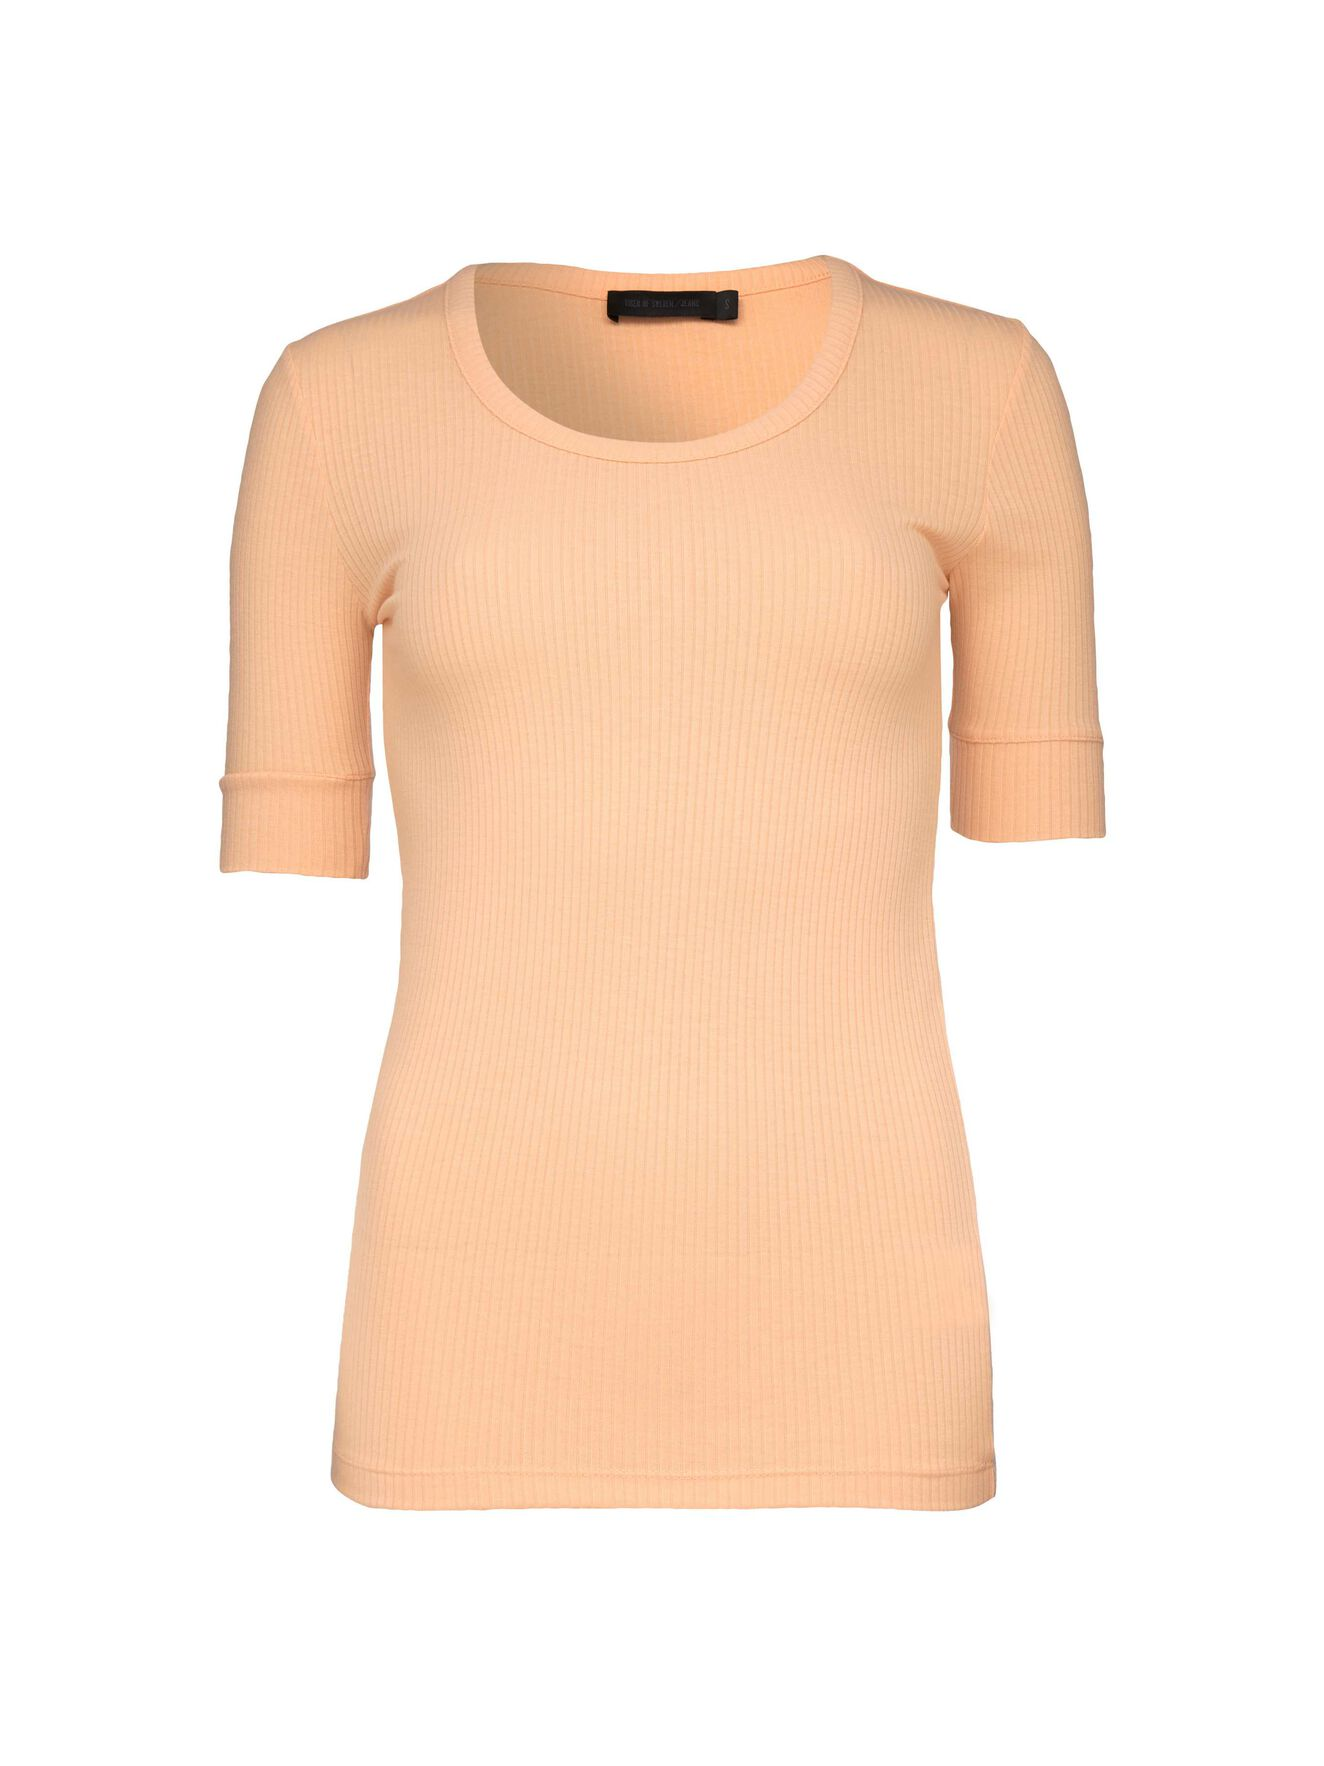 Violent T-Shirt in Peach Quartz from Tiger of Sweden